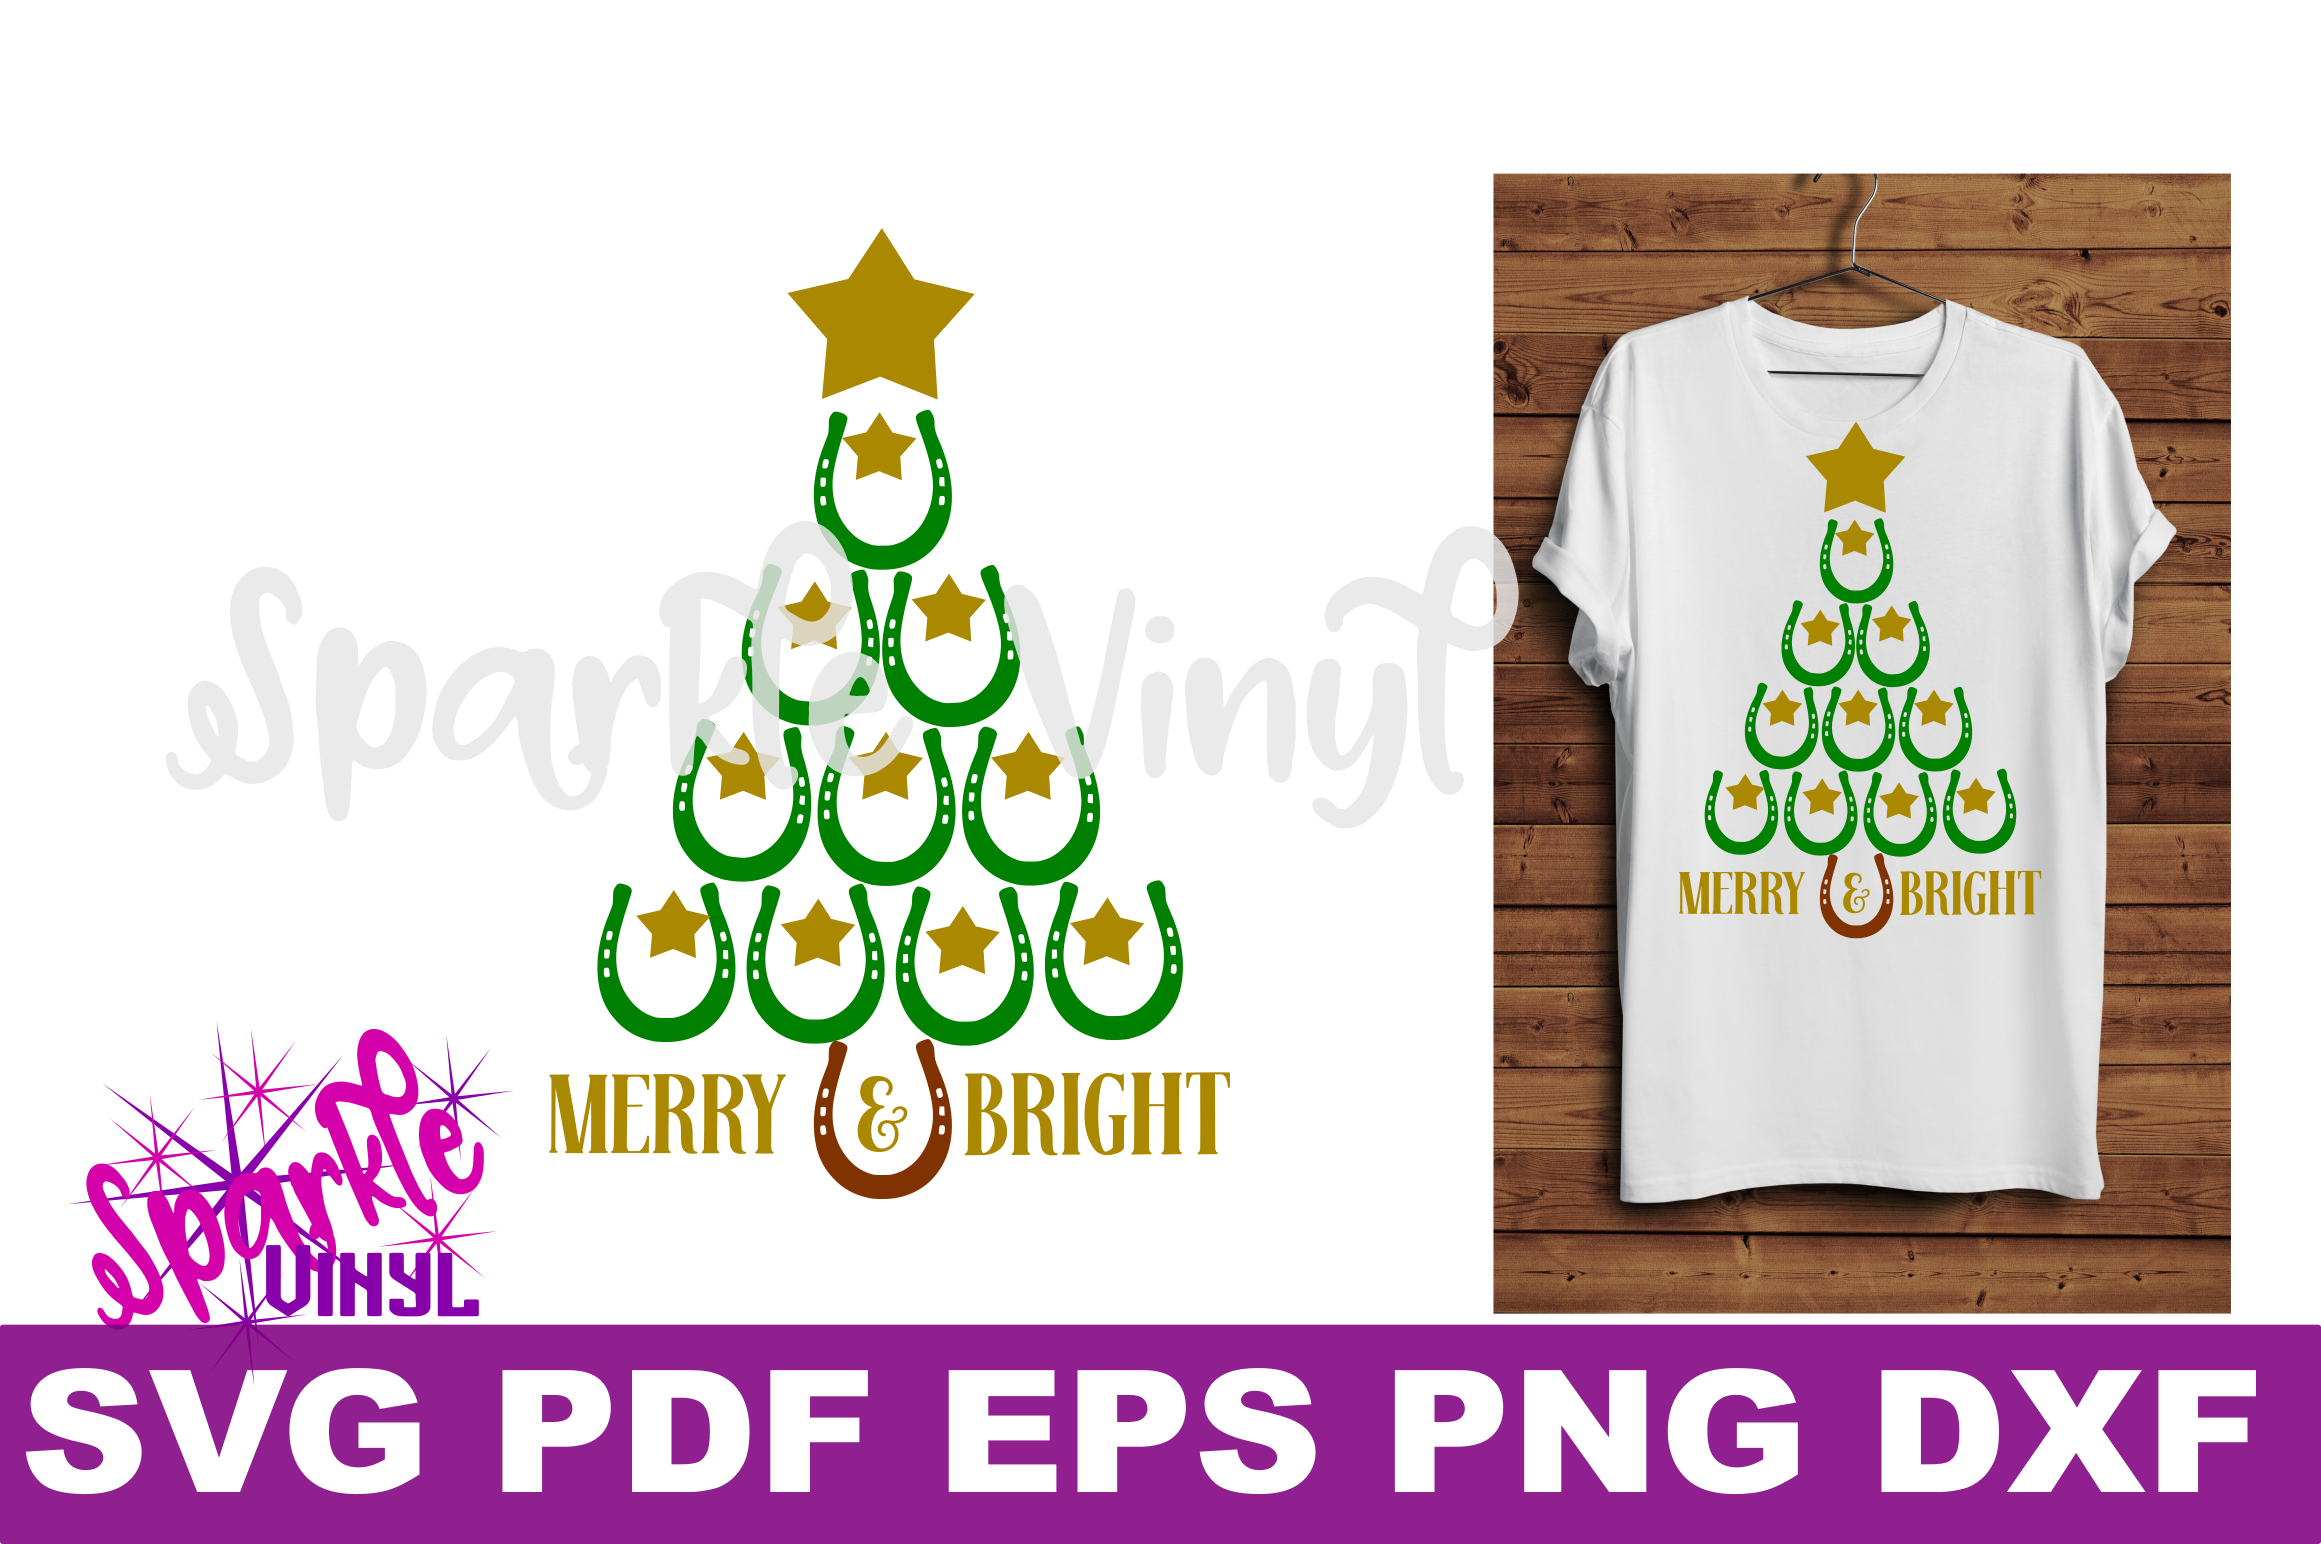 SVG Christmas Cowboy Cowgirl Christmas Horseshoe Tree Merry and Bright Stars Shirt Printable Svg files for cricut silhouette dxf png pdf eps example image 2